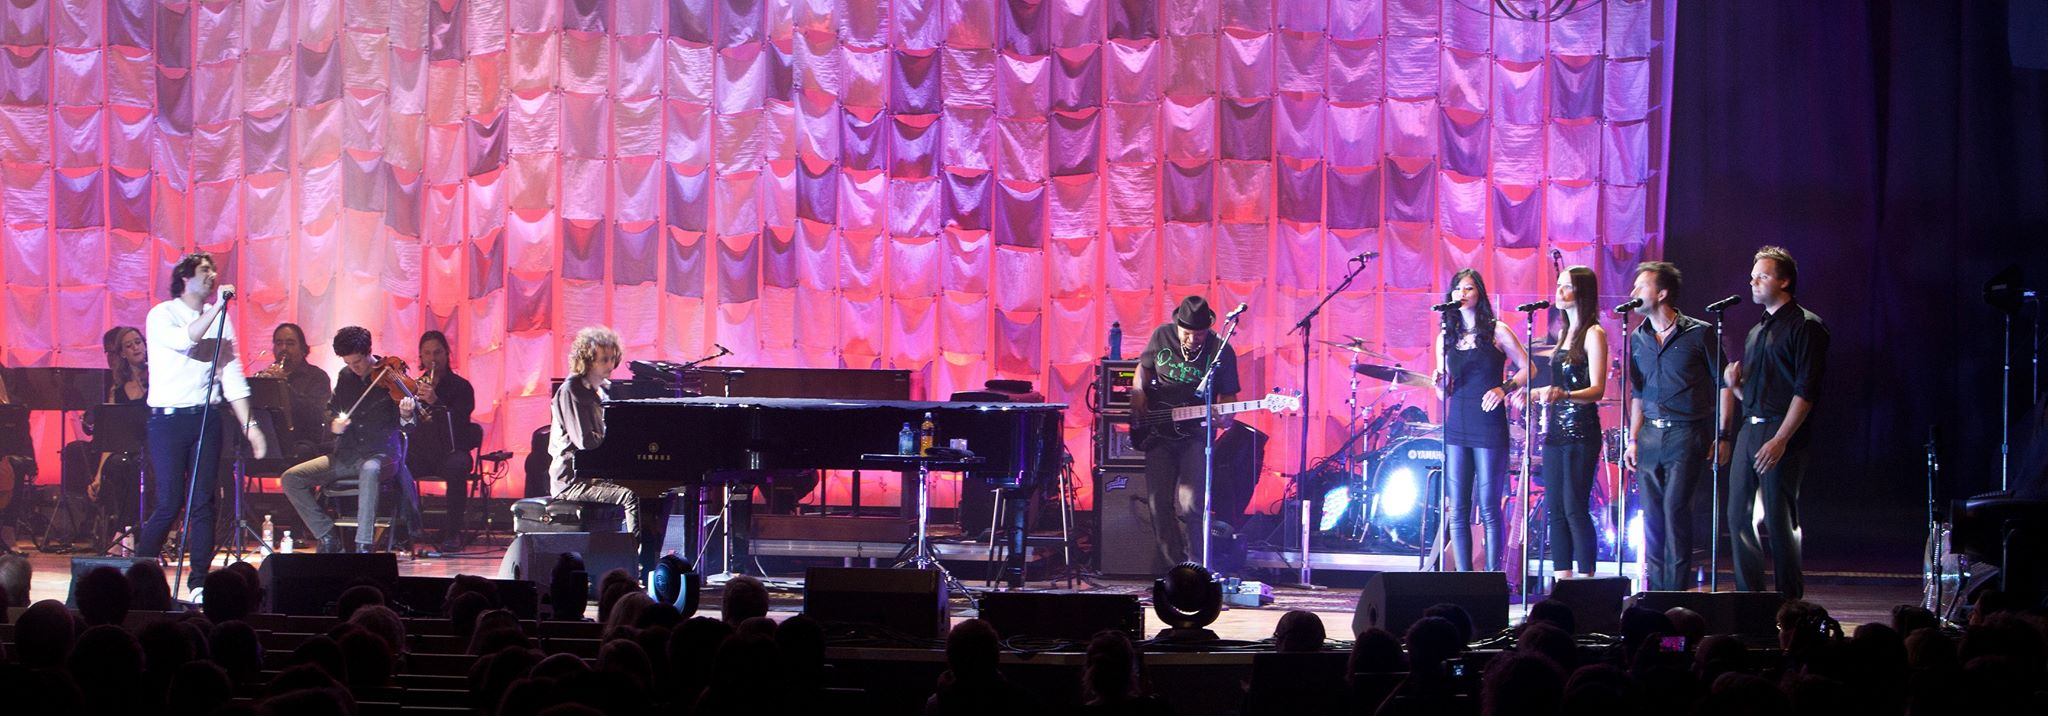 @ Josh Groban World Tour'13